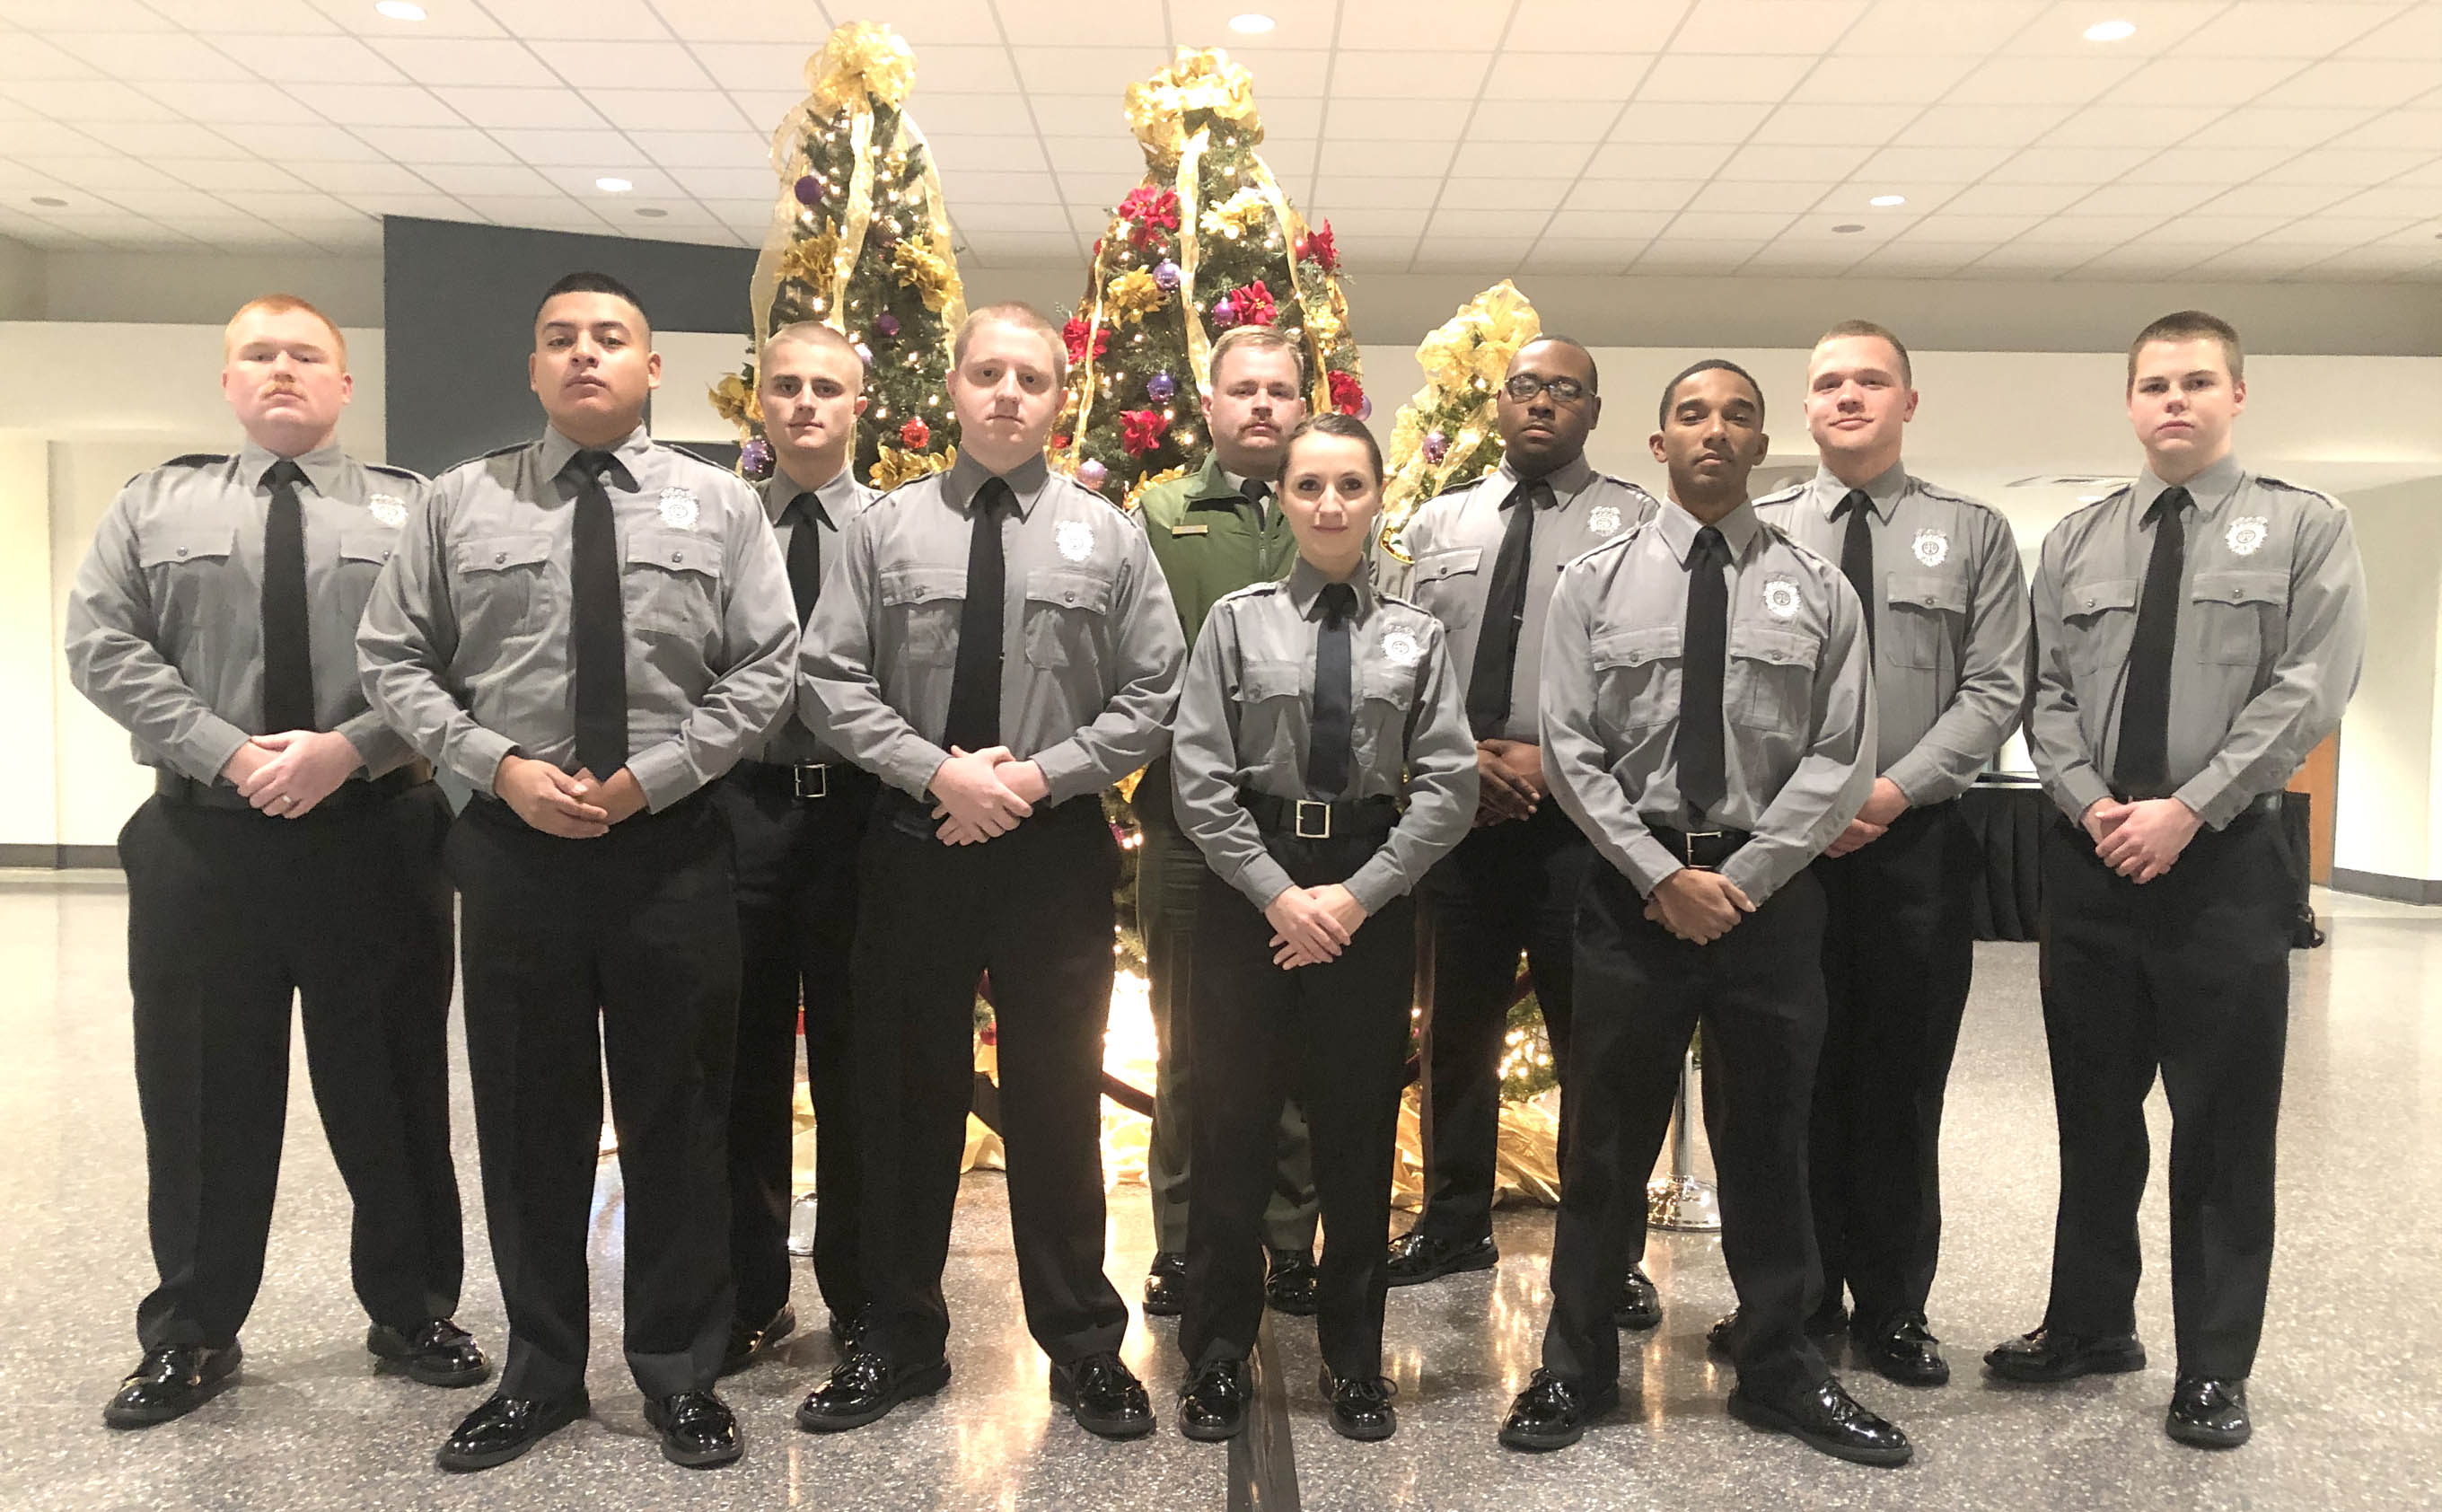 Click to enlarge,  Pictured are members of Central Carolina Community College's Basic Law Enforcement Training (BLET) graduating class -- (left to right), front row, Isael Dominguez, John Thomas, Alyona Eakes, and Corey Smith; back row, Steven Nordlof, Zachary Hayes, Spencer Williams, Joshua Elliott, Philip Hanson, and Mathew Bell. For more information about the college's BLET program, visit www.cccc.edu/blet or contact Robert Powell at rpowell@cccc.edu or 919-777-7774.